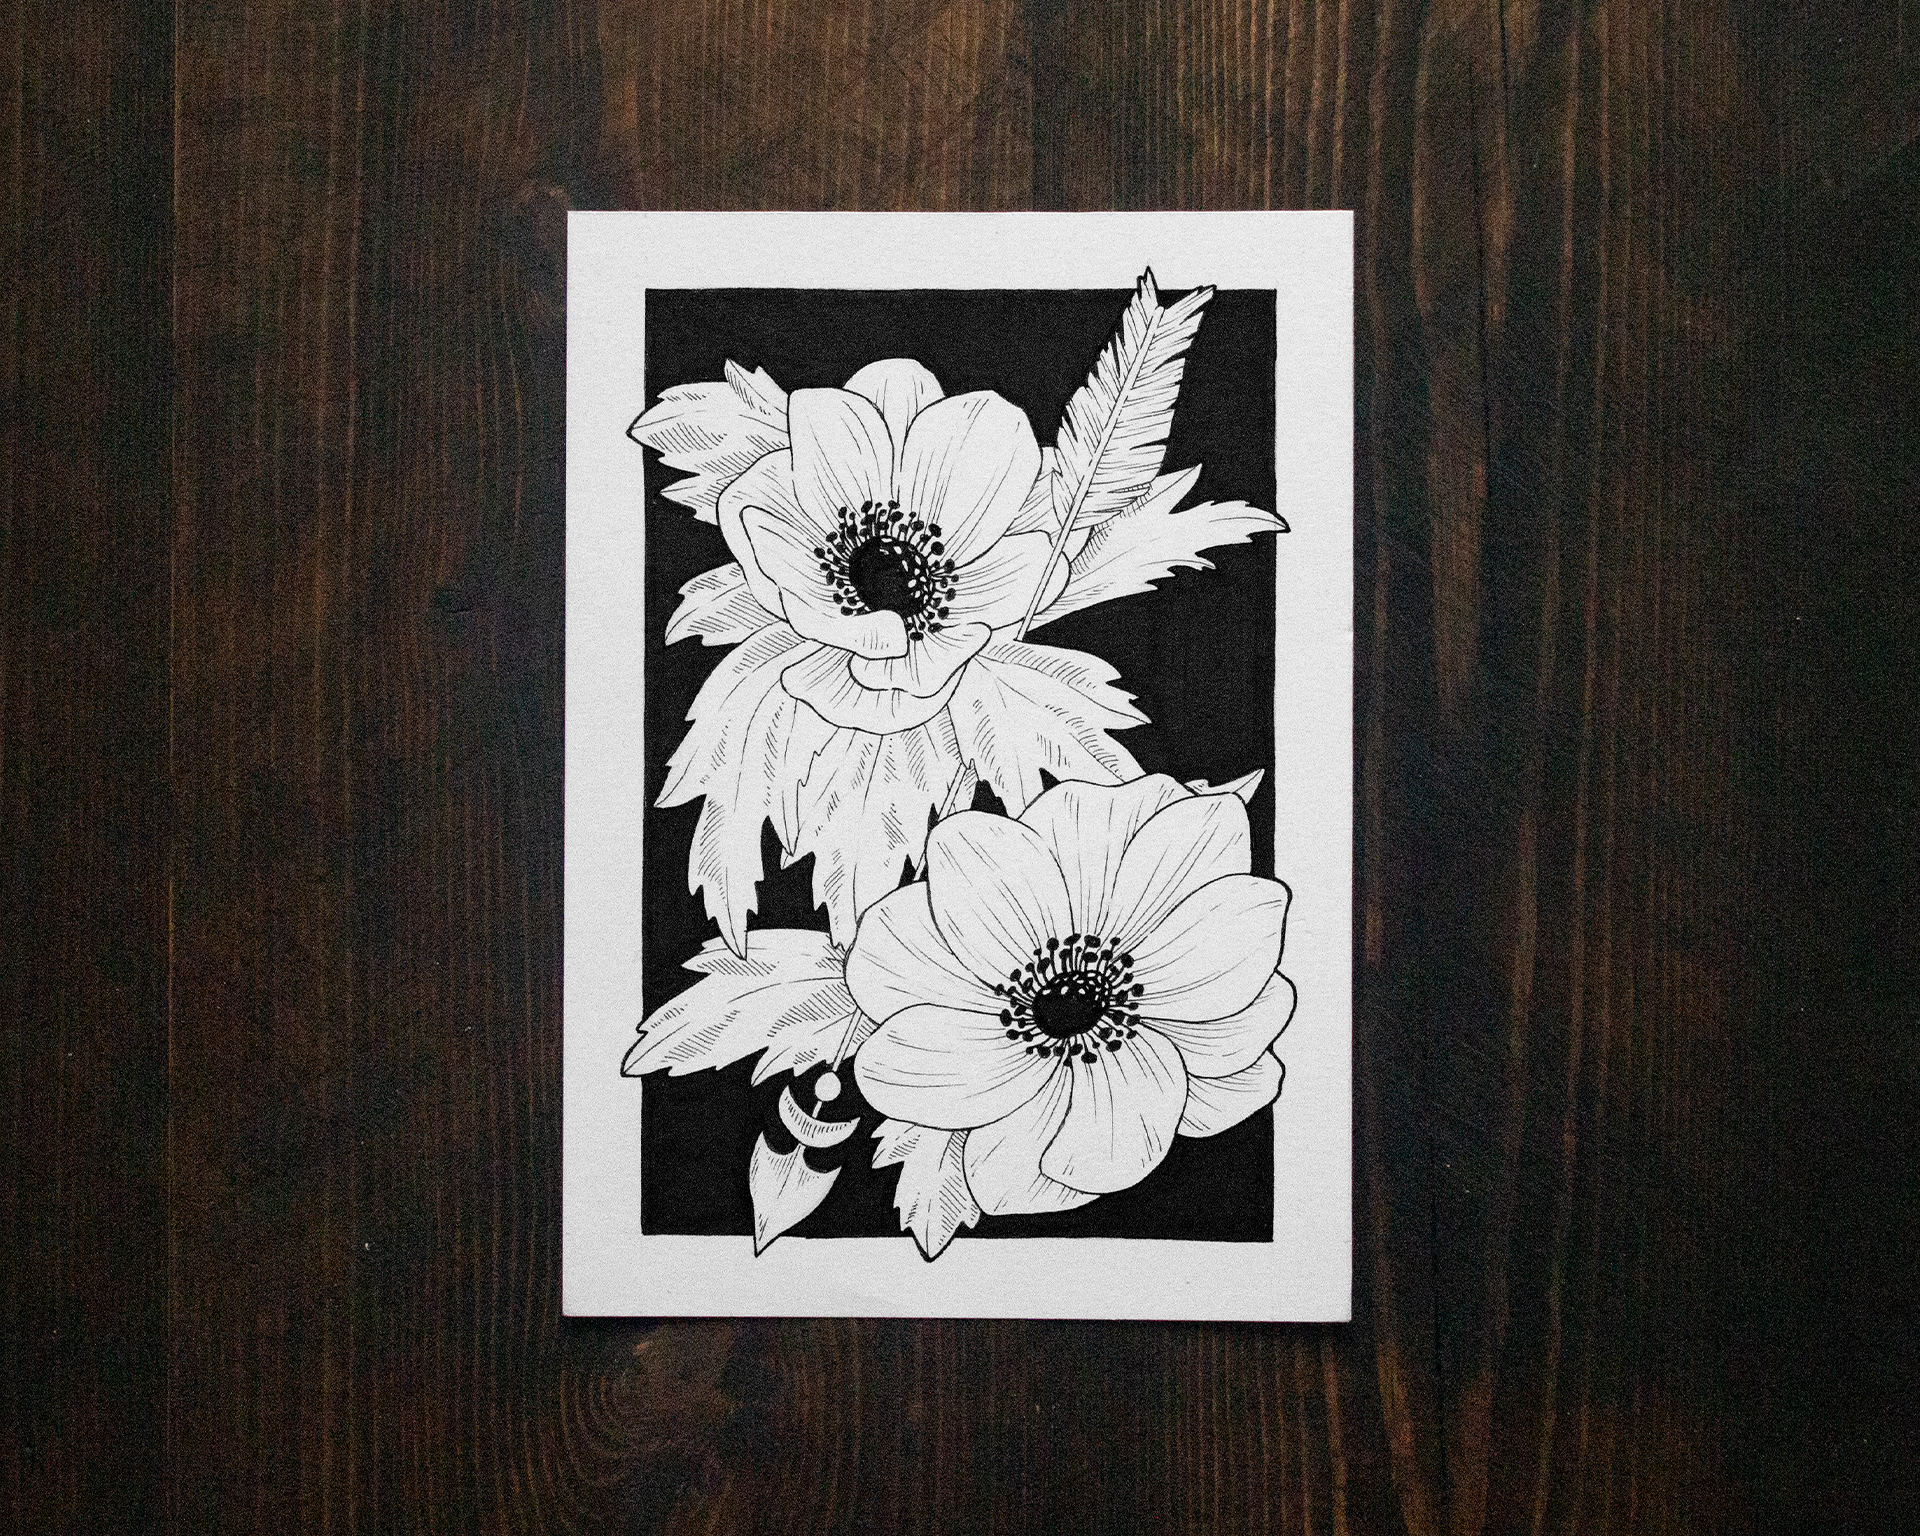 Jenn Sneary Illustration, Anemone, floral pen and ink fantasy drawings